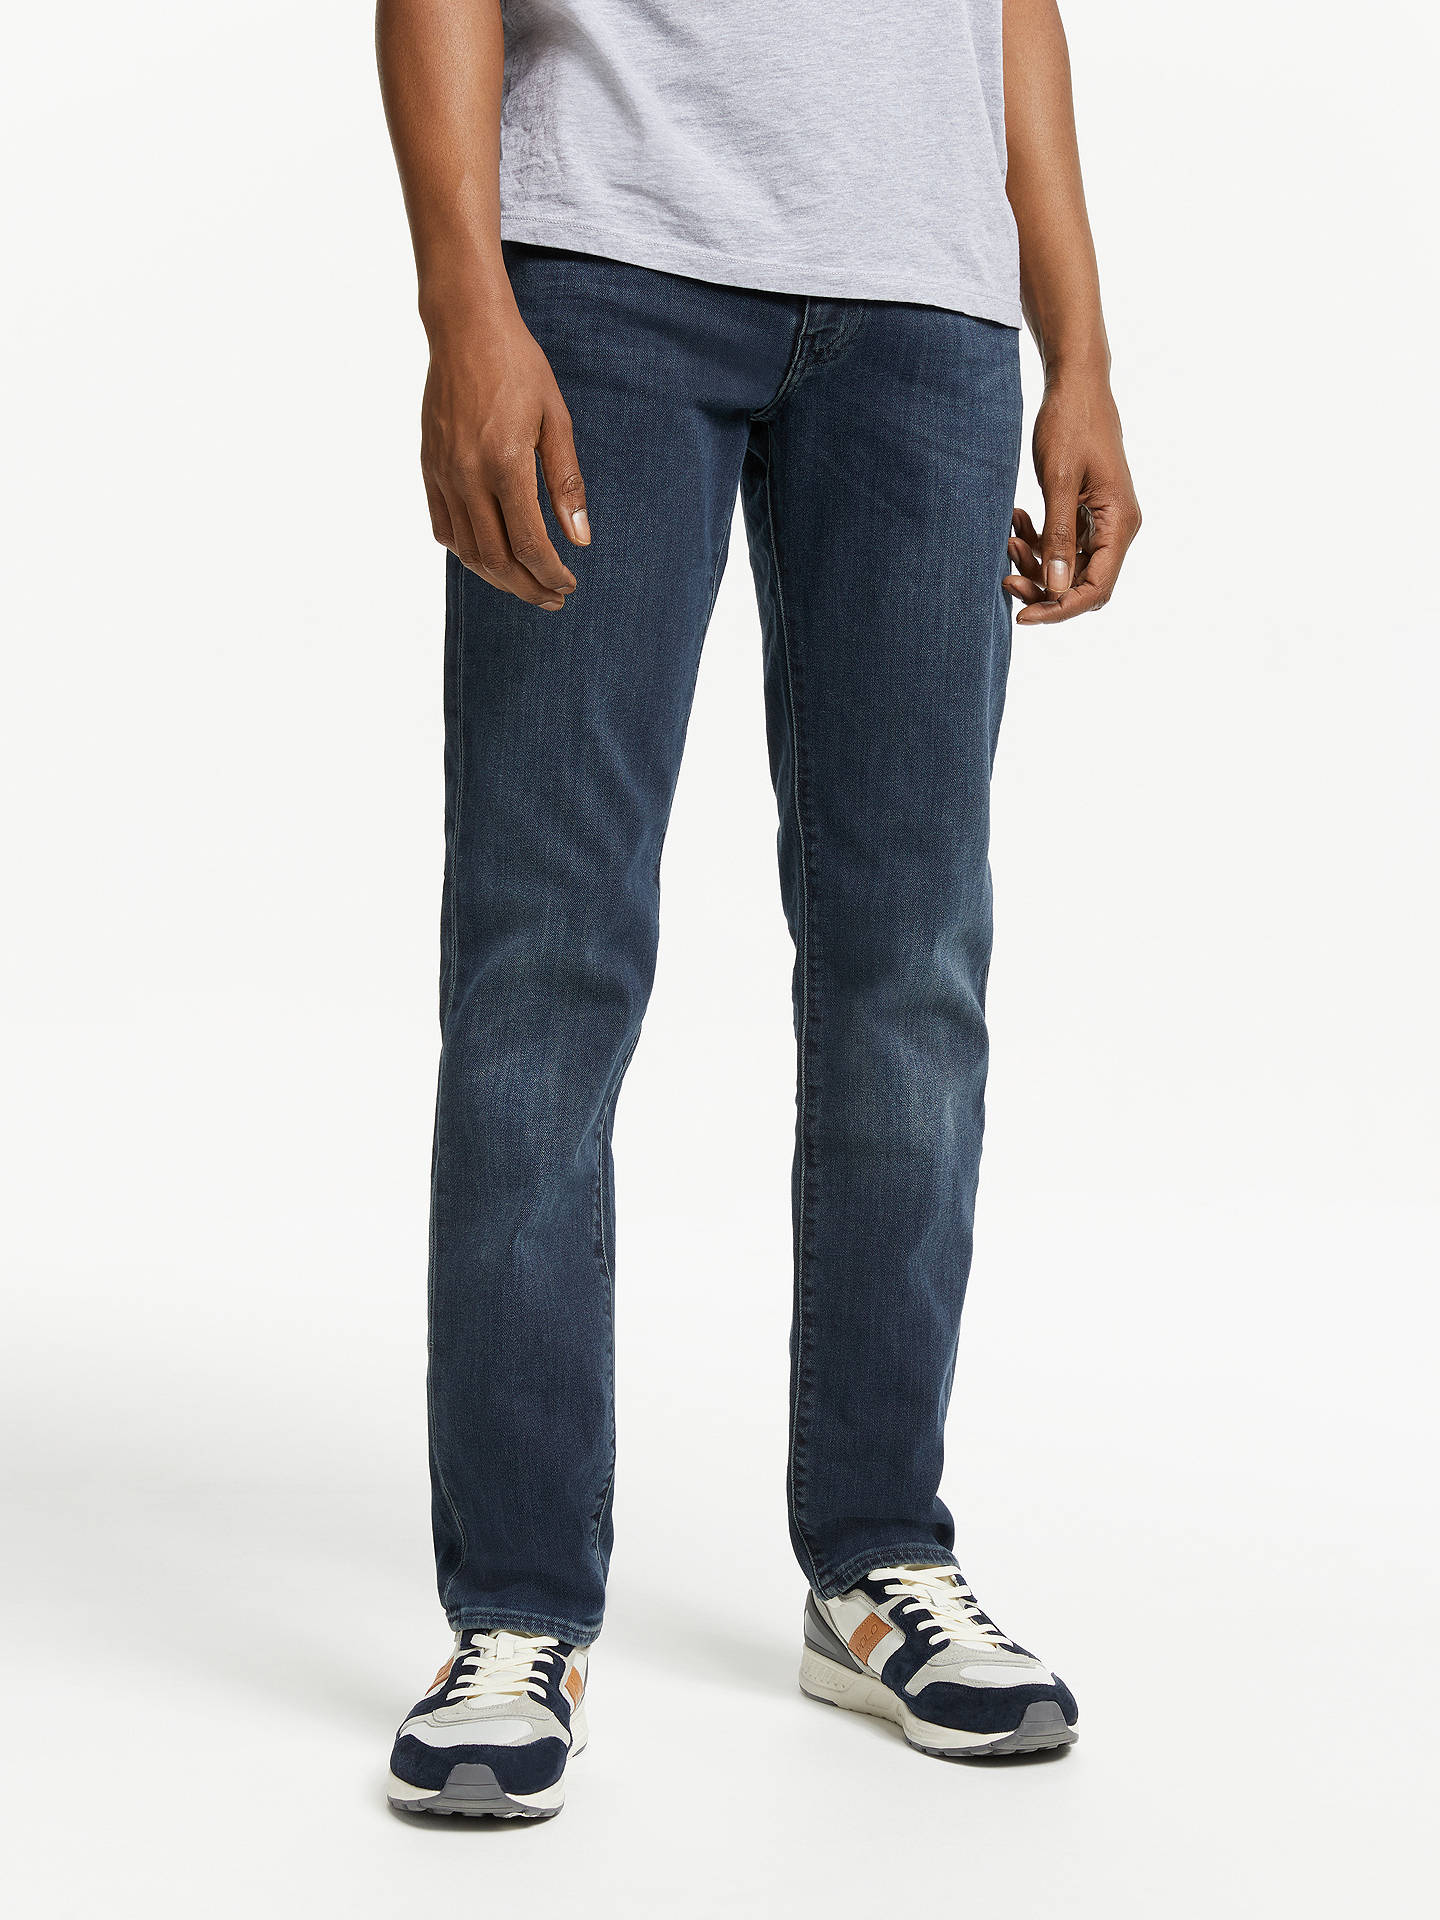 7bd80a7db6e Buy Levi's 511 Slim Fit Jeans, Headed South, 30S Online at johnlewis. ...